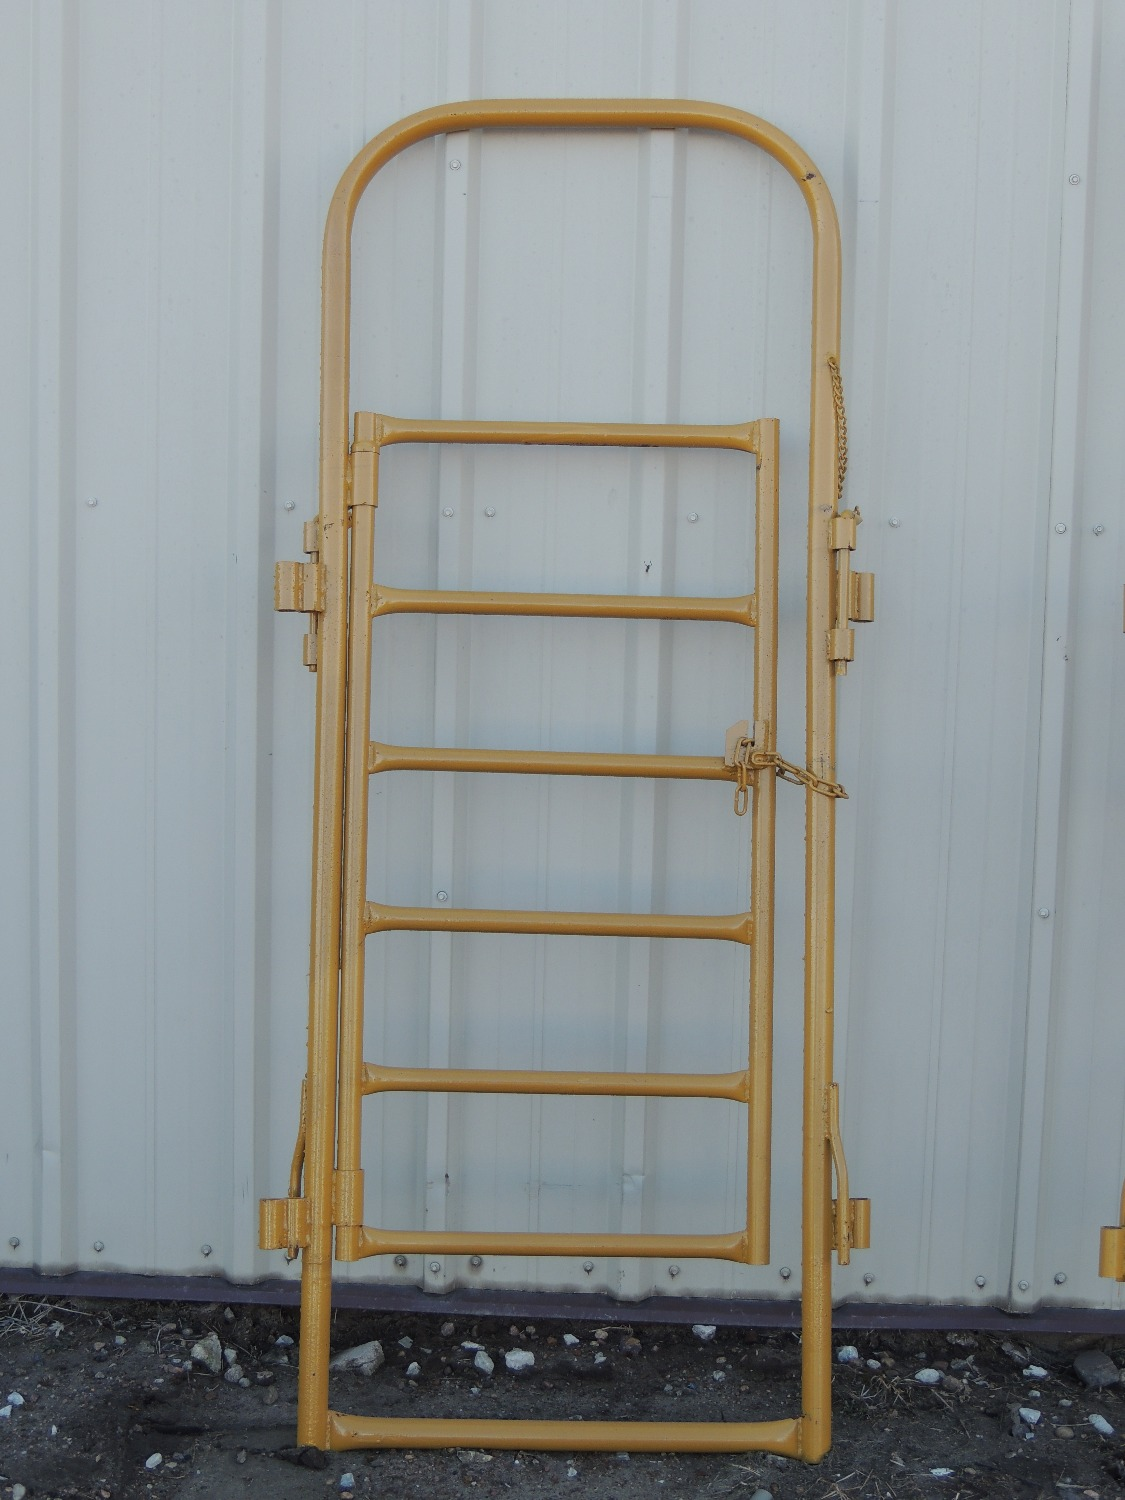 Framed Gate